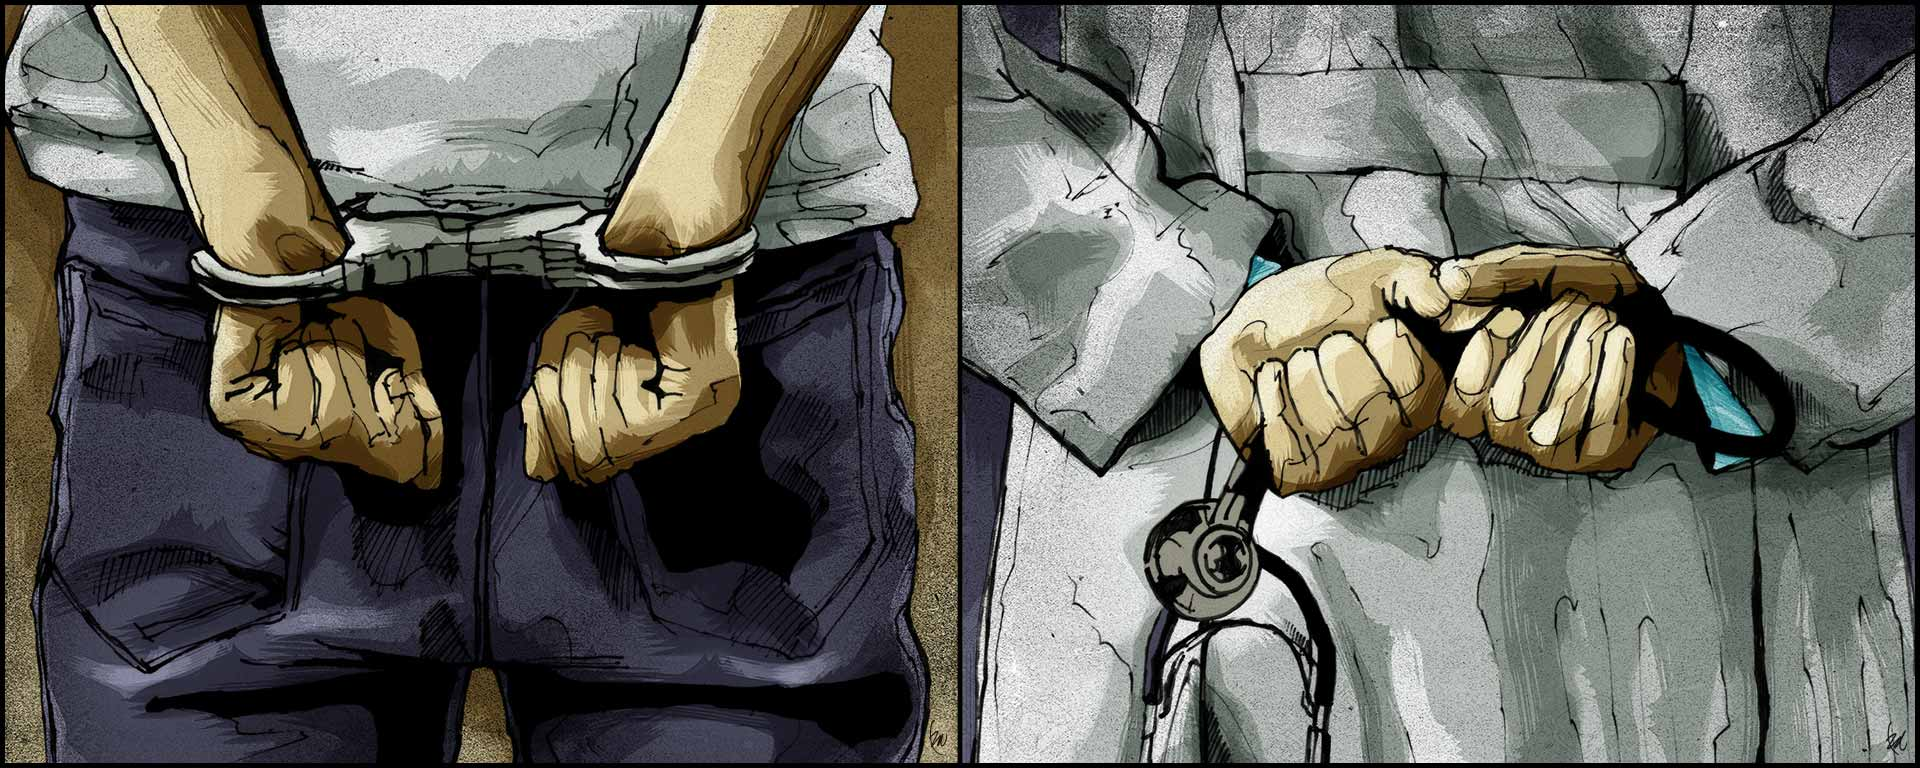 Physician patient sexual misconduct